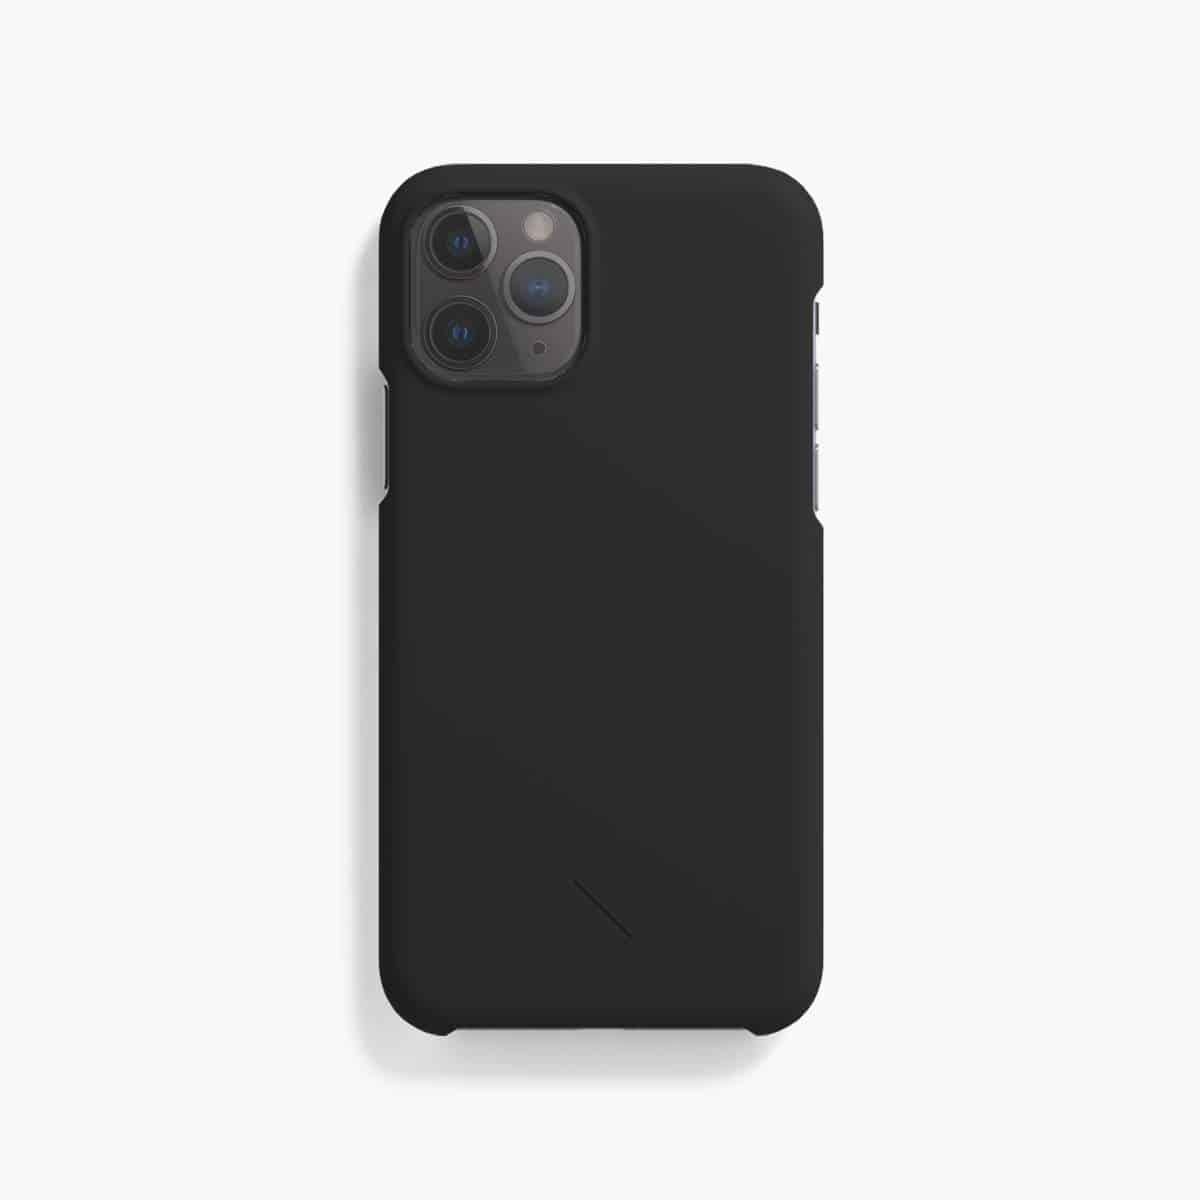 A Good Company cover – Charcoal Black – iPhone 11 Pro